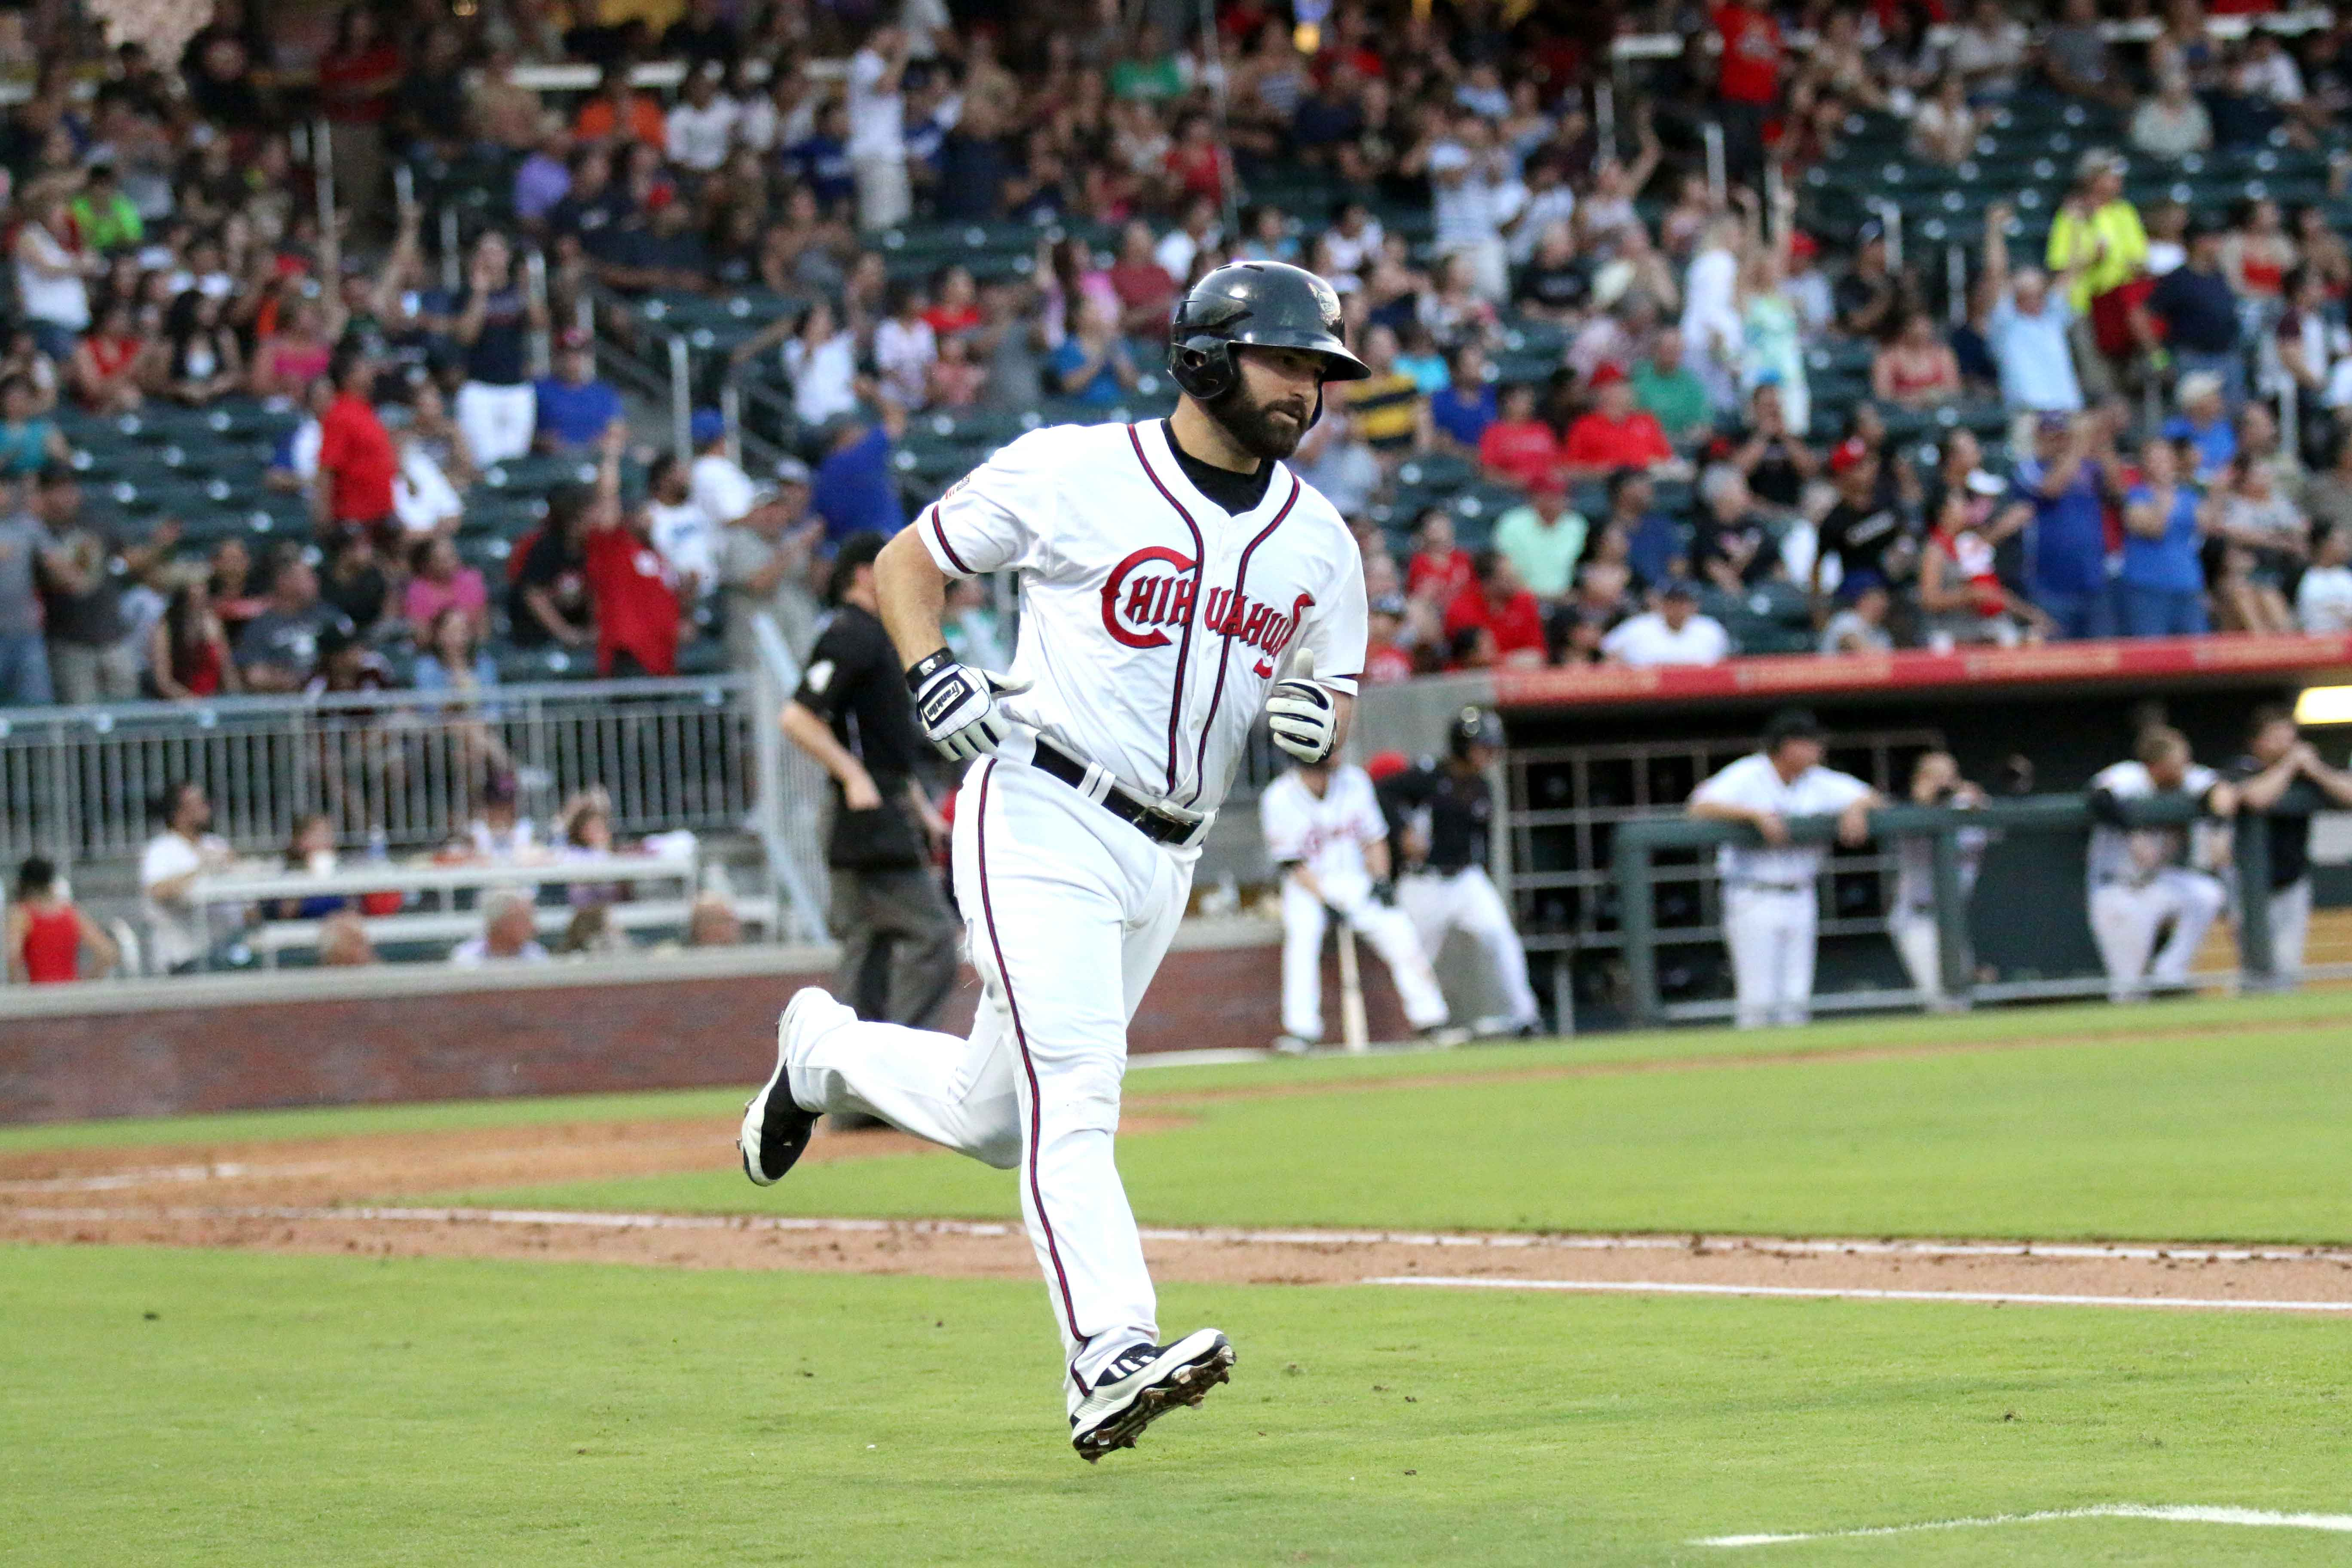 Cody Decker hits the first home run of the night.